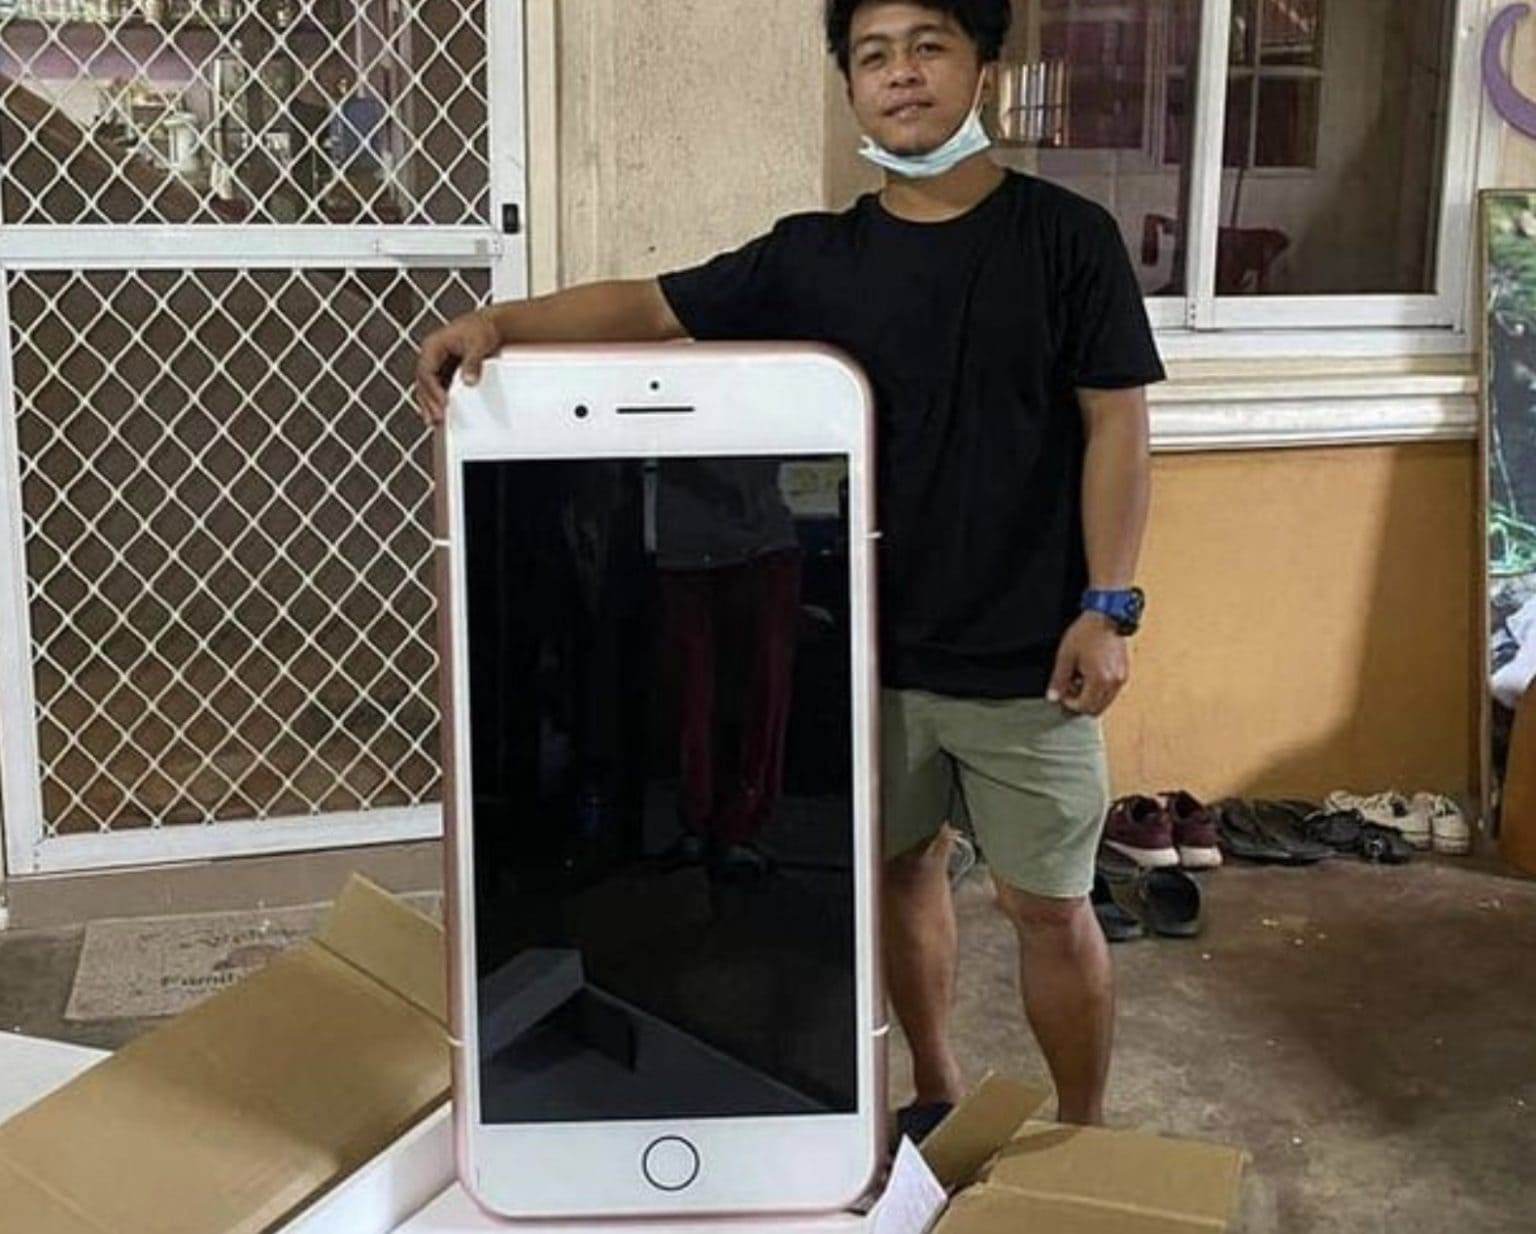 iPhone table man